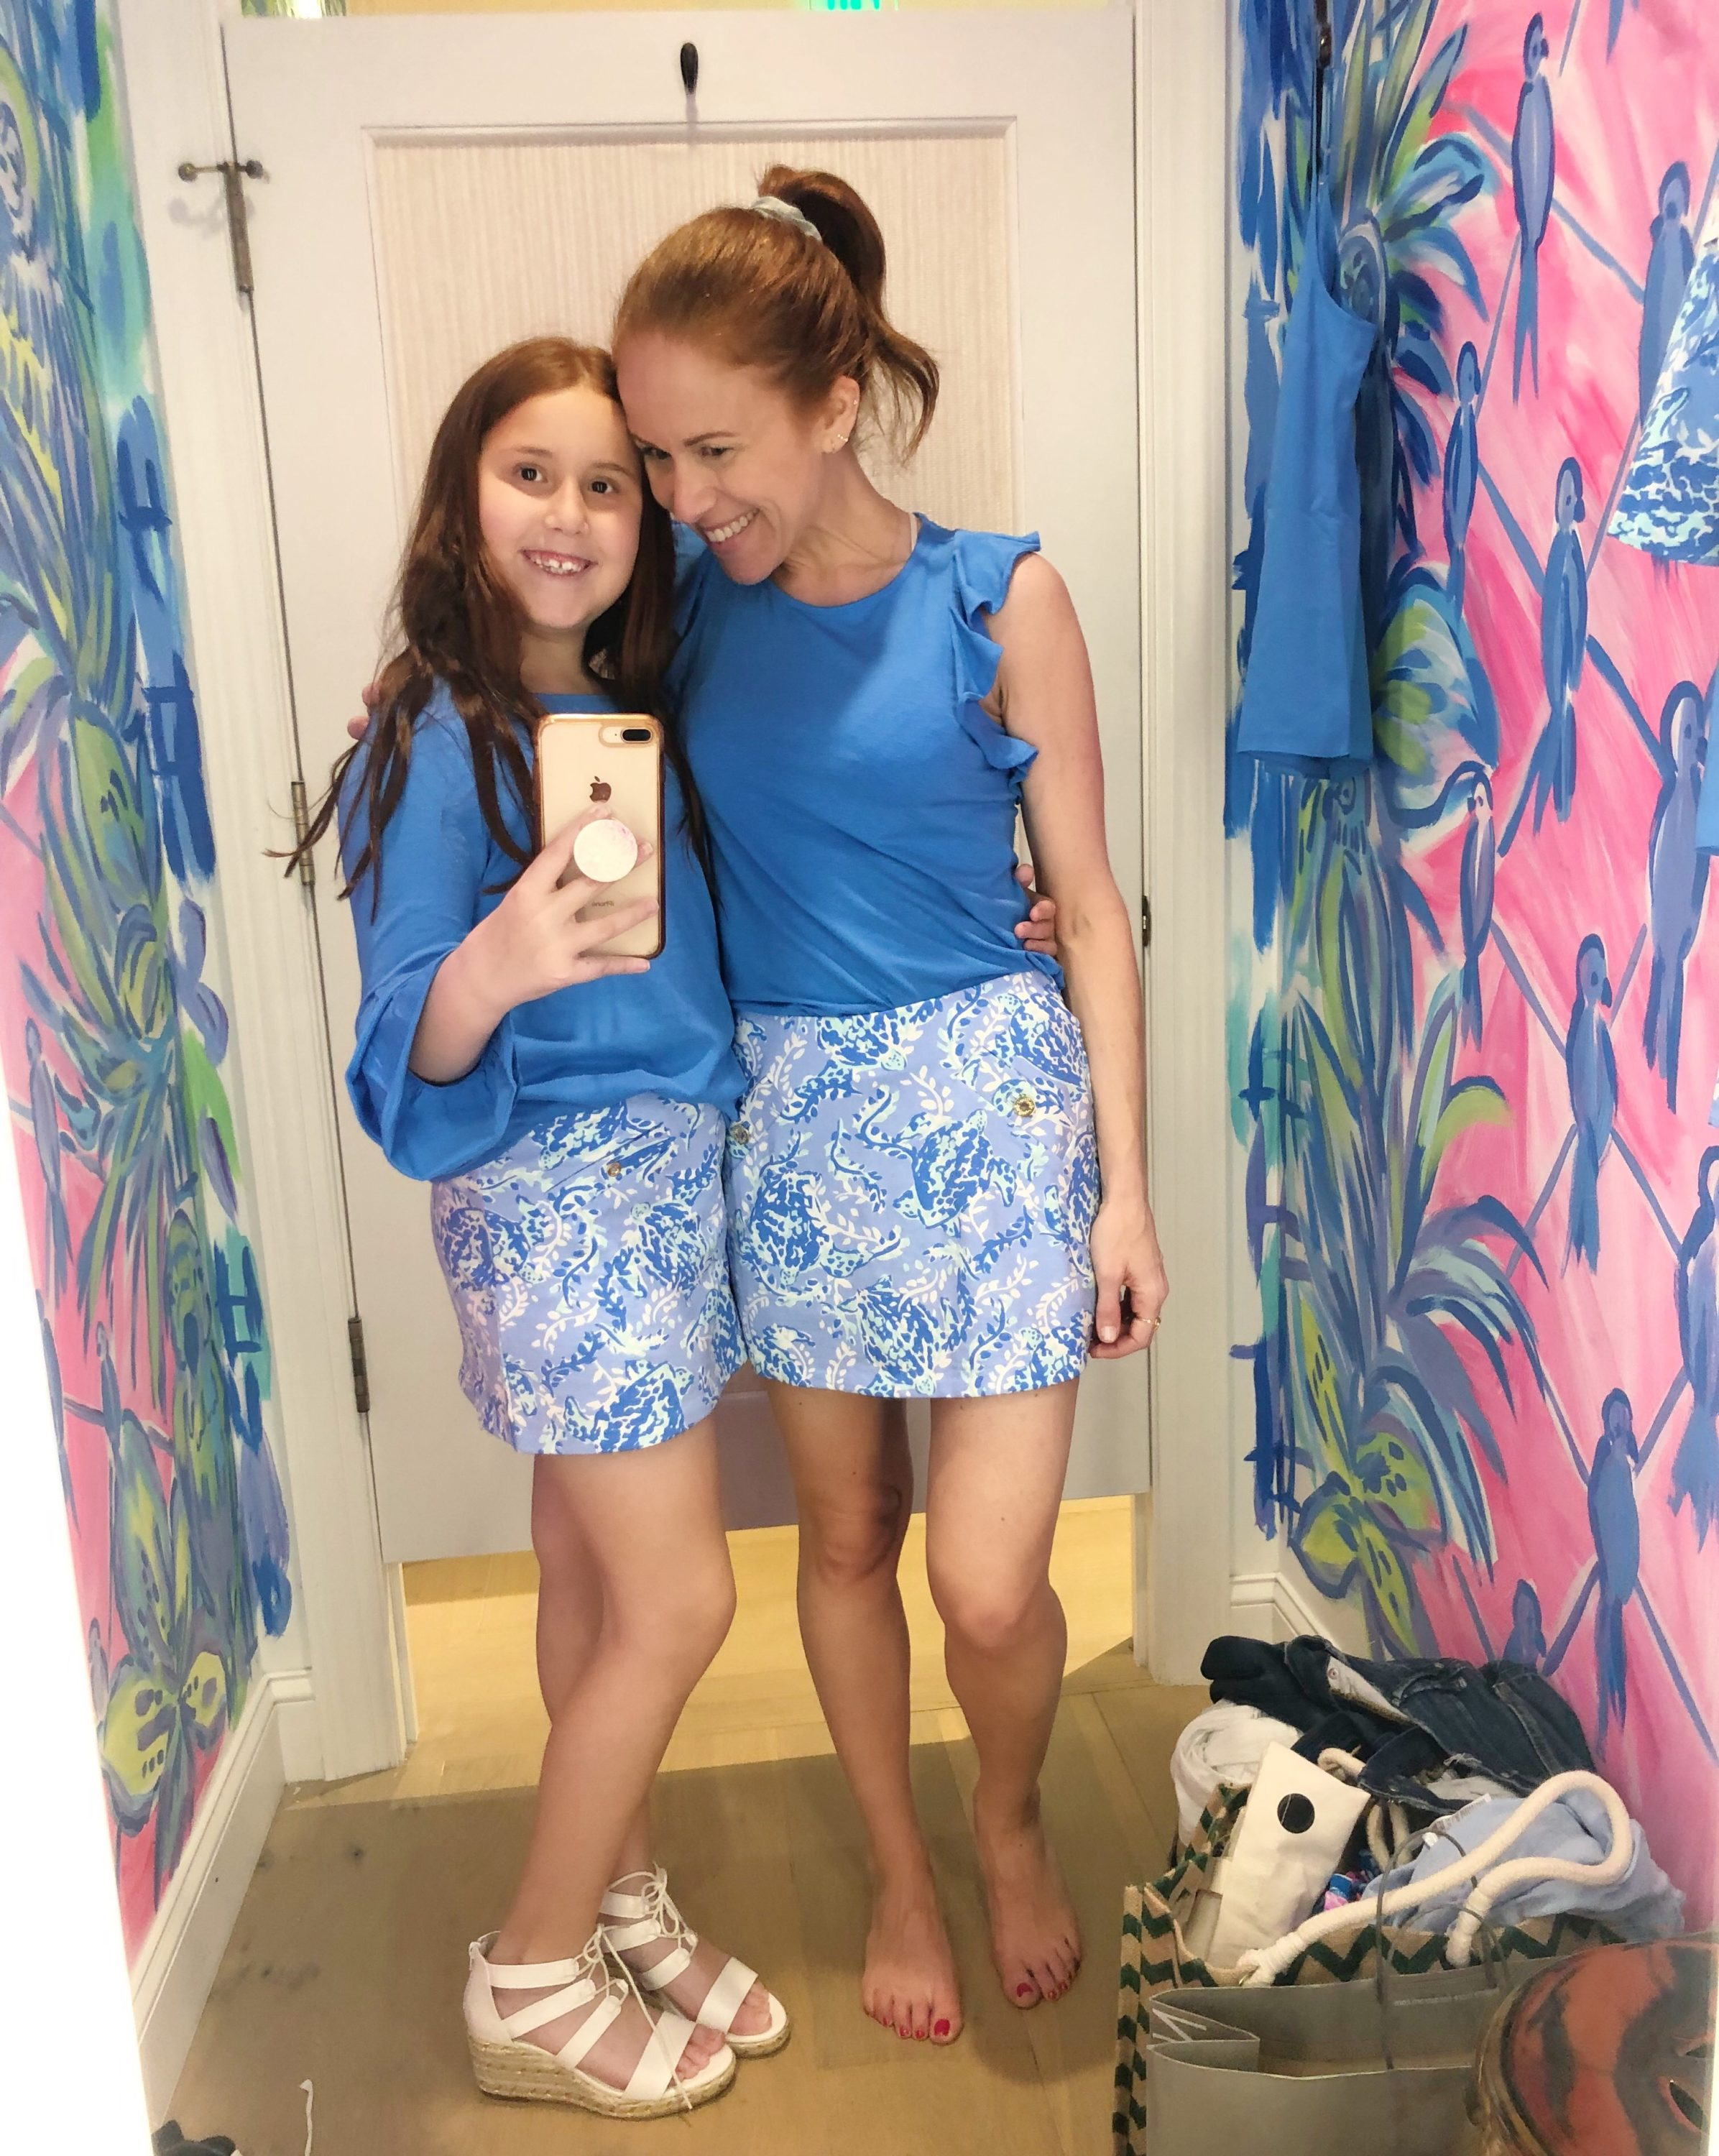 What to Get at the Lilly Pulitzer After Party Sale by popular Florida fashion blog, The Modern Savvy: image of a woman and her daughter wearing a Lilly Pulitzer GIRLS MAZIE TOP, Lilly Pulitzer GIRLS MINI MADISON SKORT, Lilly Pulitzer LANETTE TOP, and Lilly Pulitzer MADISON SKORT.